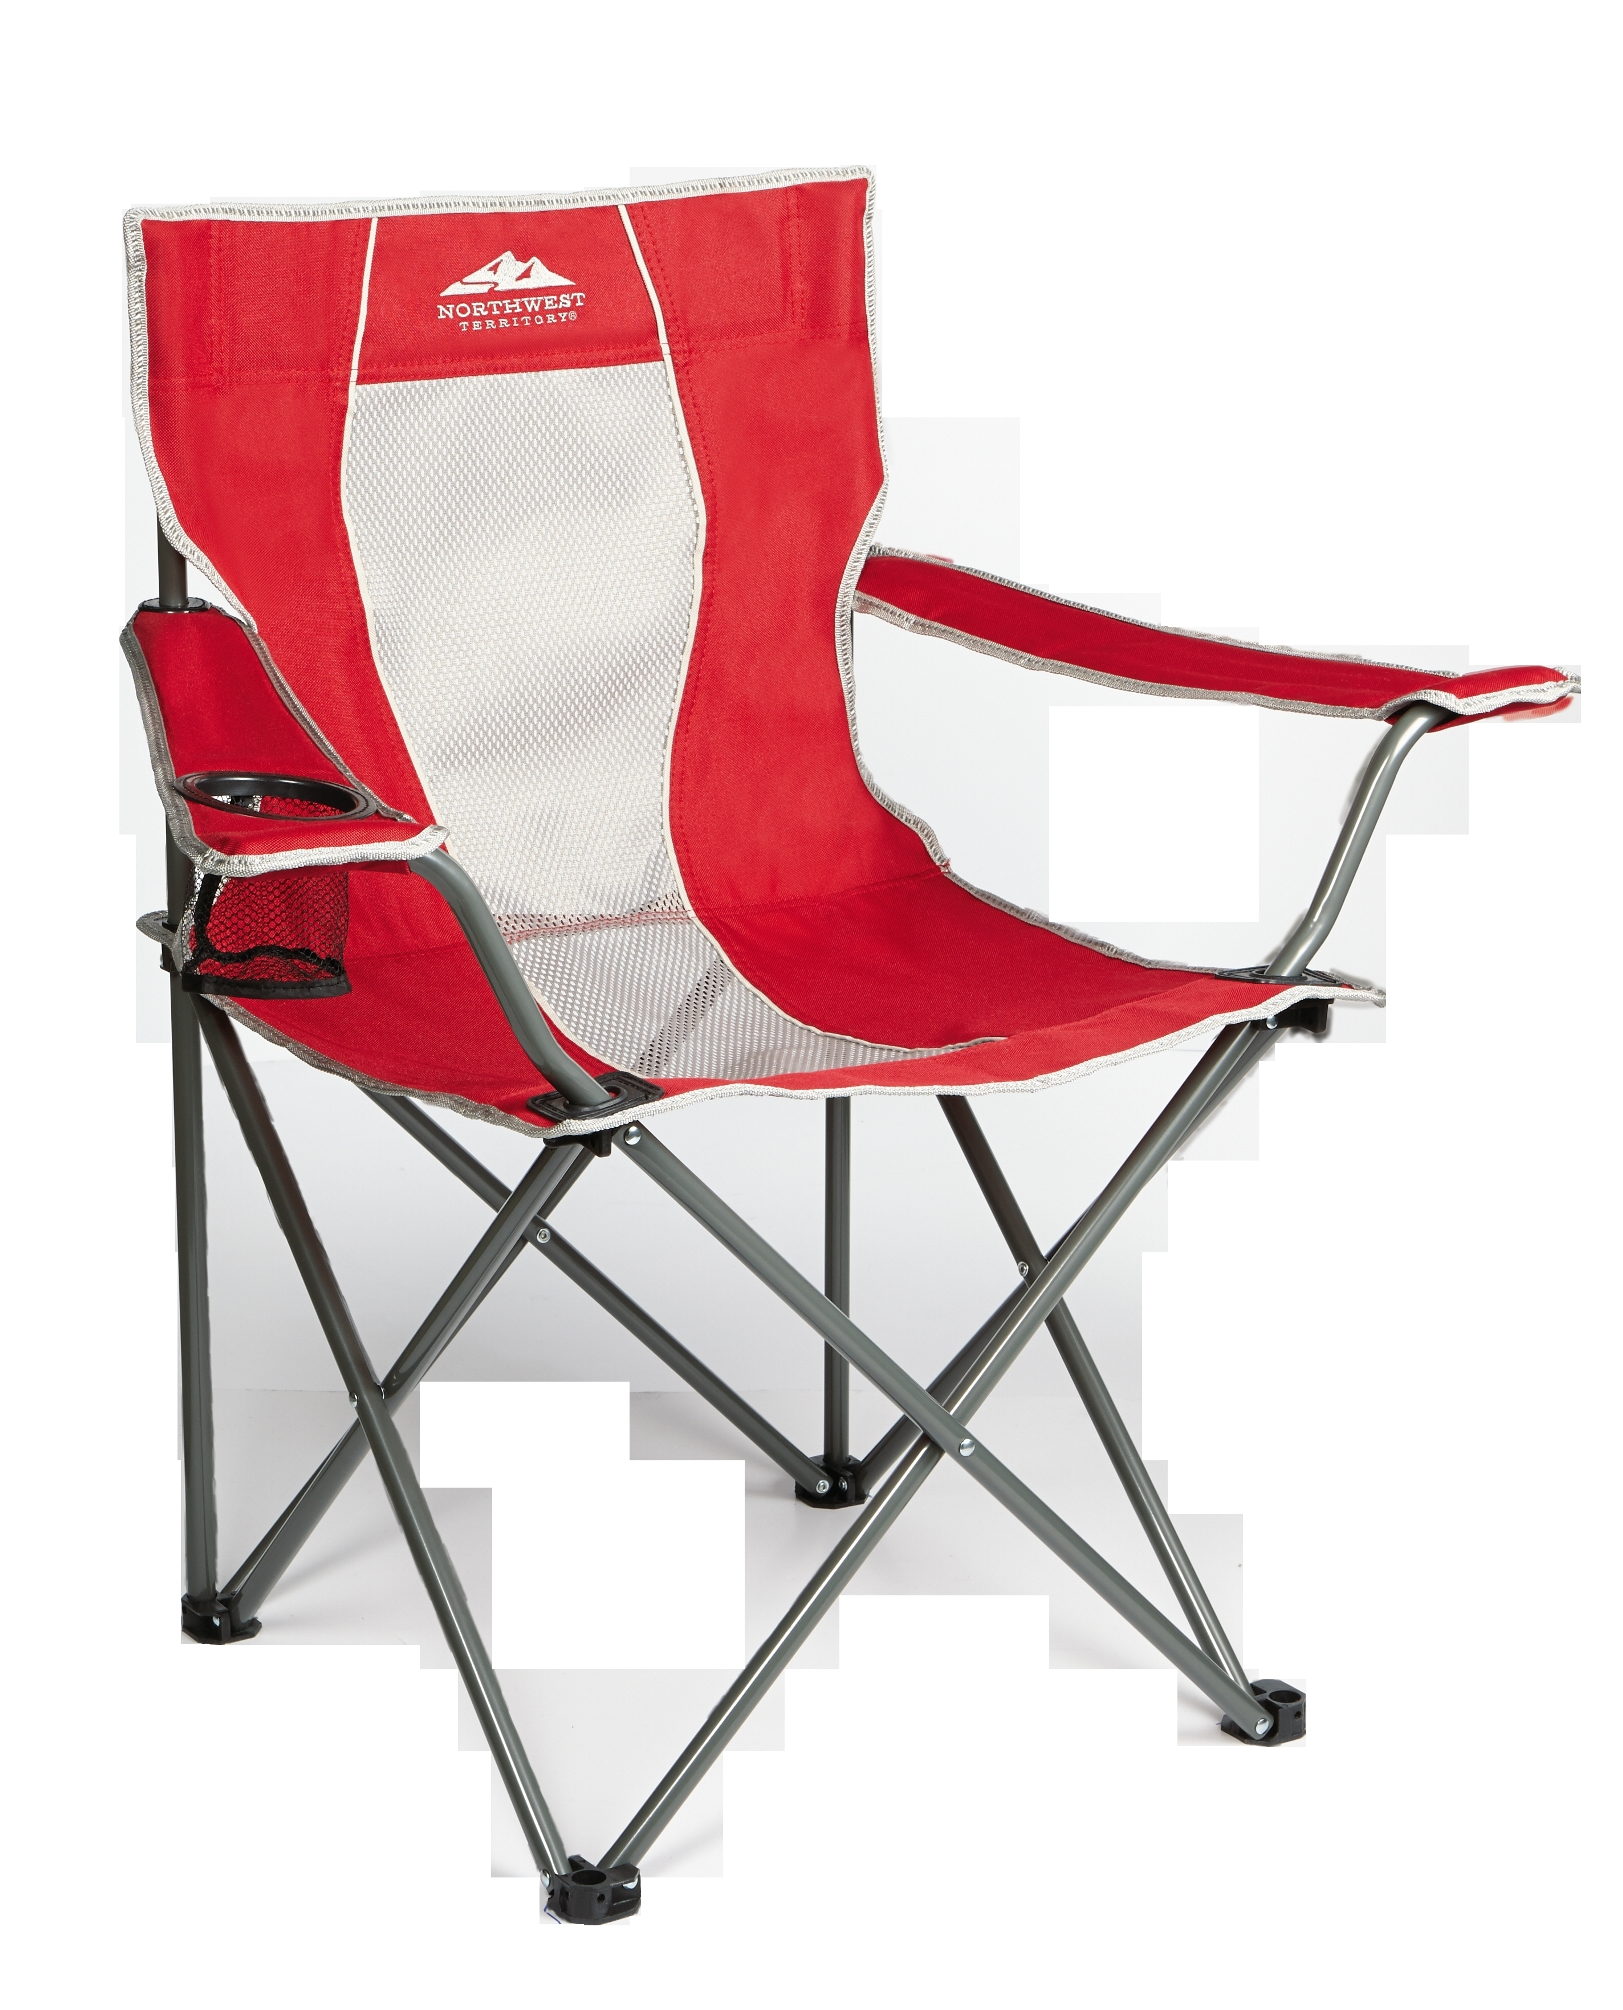 Picnic Time Stadium Chair Craftsman High Back Chair Free Shipping New Ebay